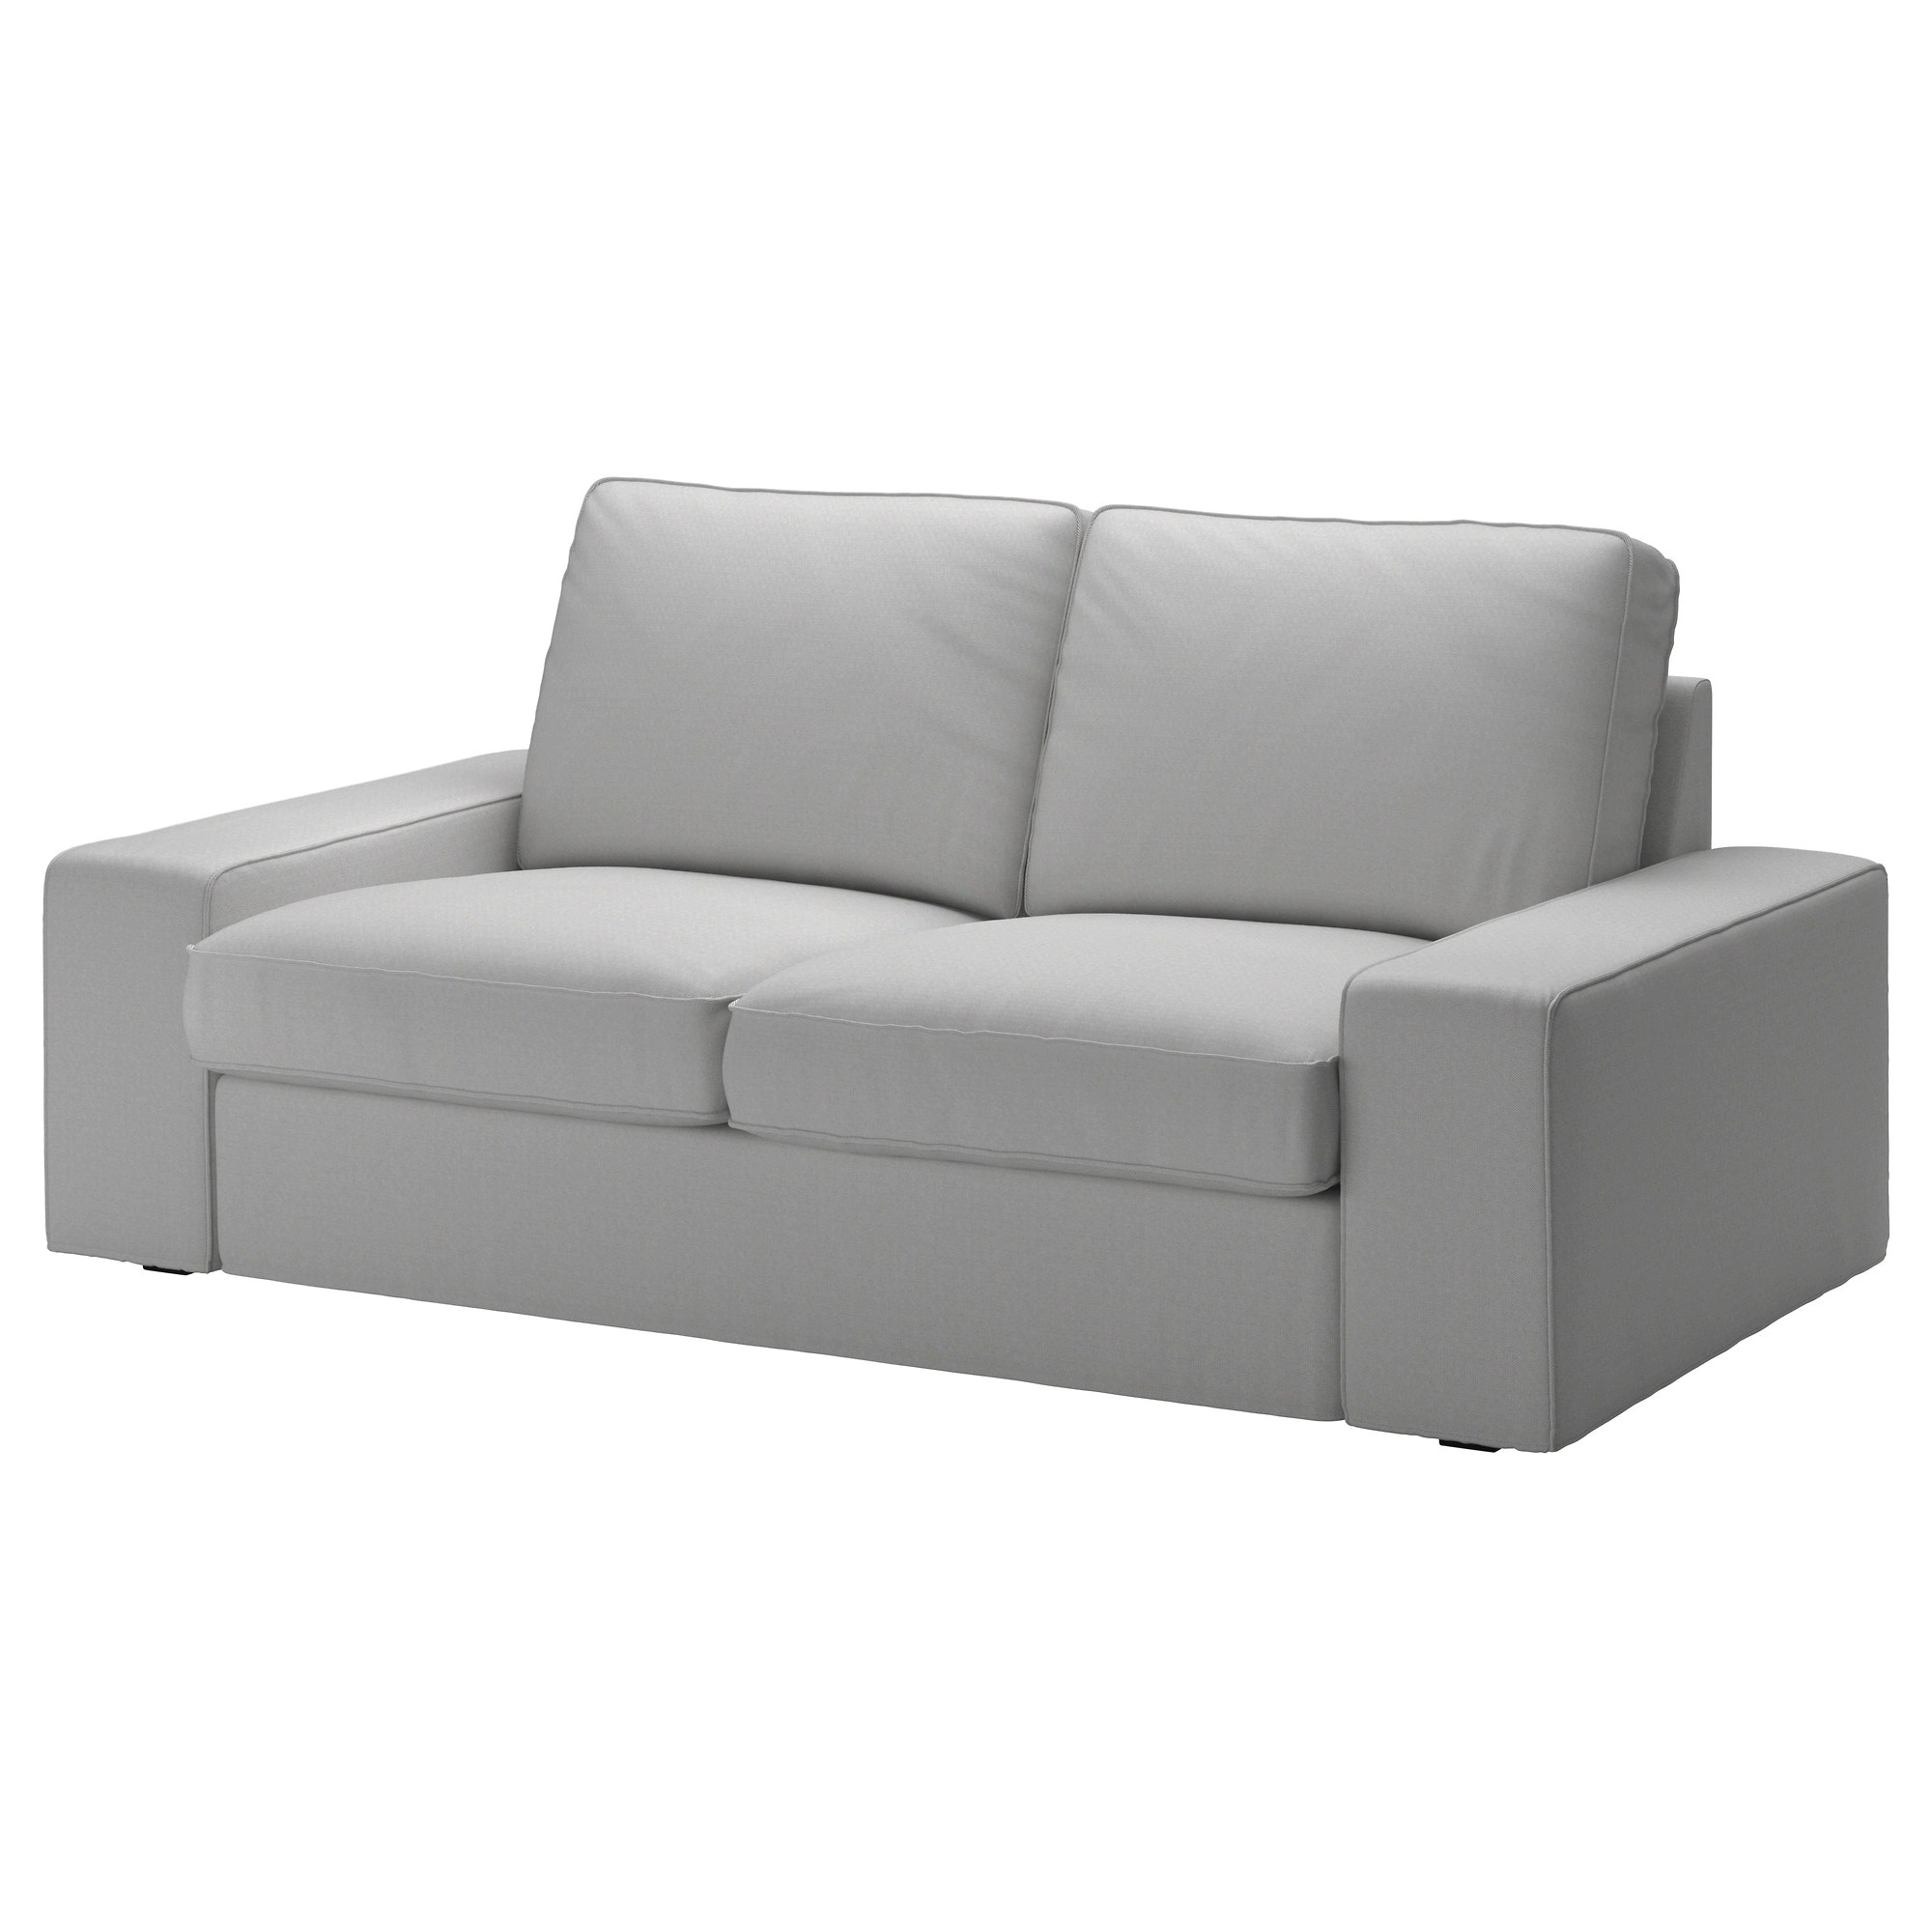 Loveseat Ikea Kivik Loveseat Orrsta Light Gray